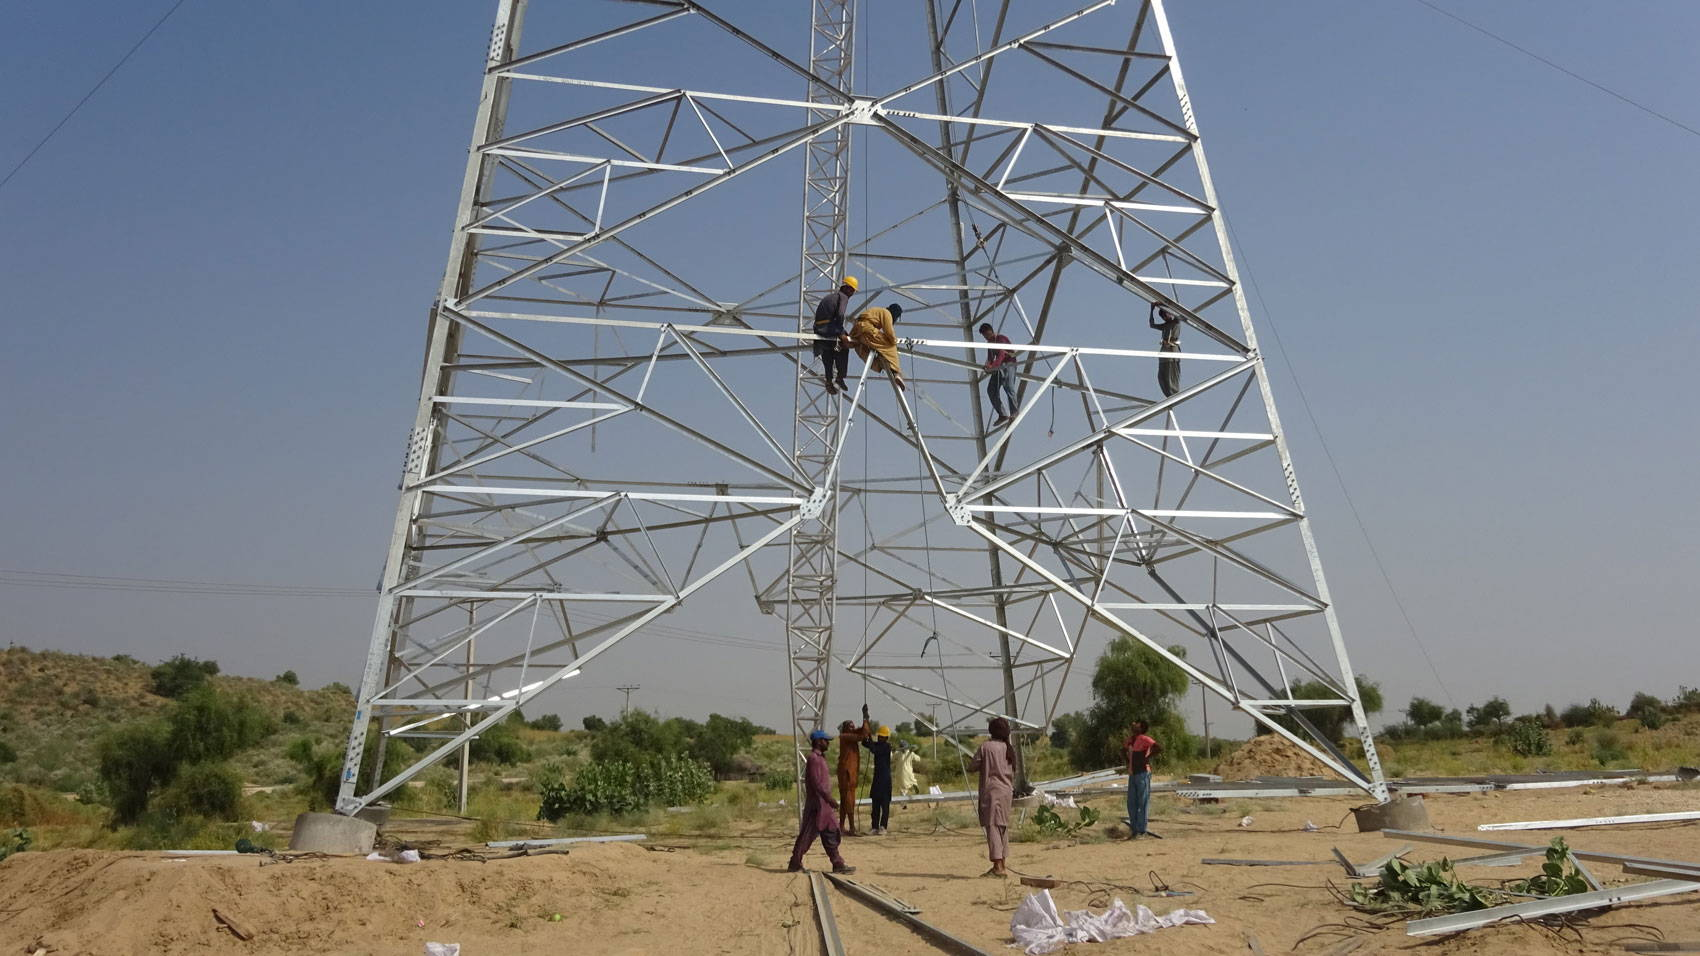 People climb on a large metal structure